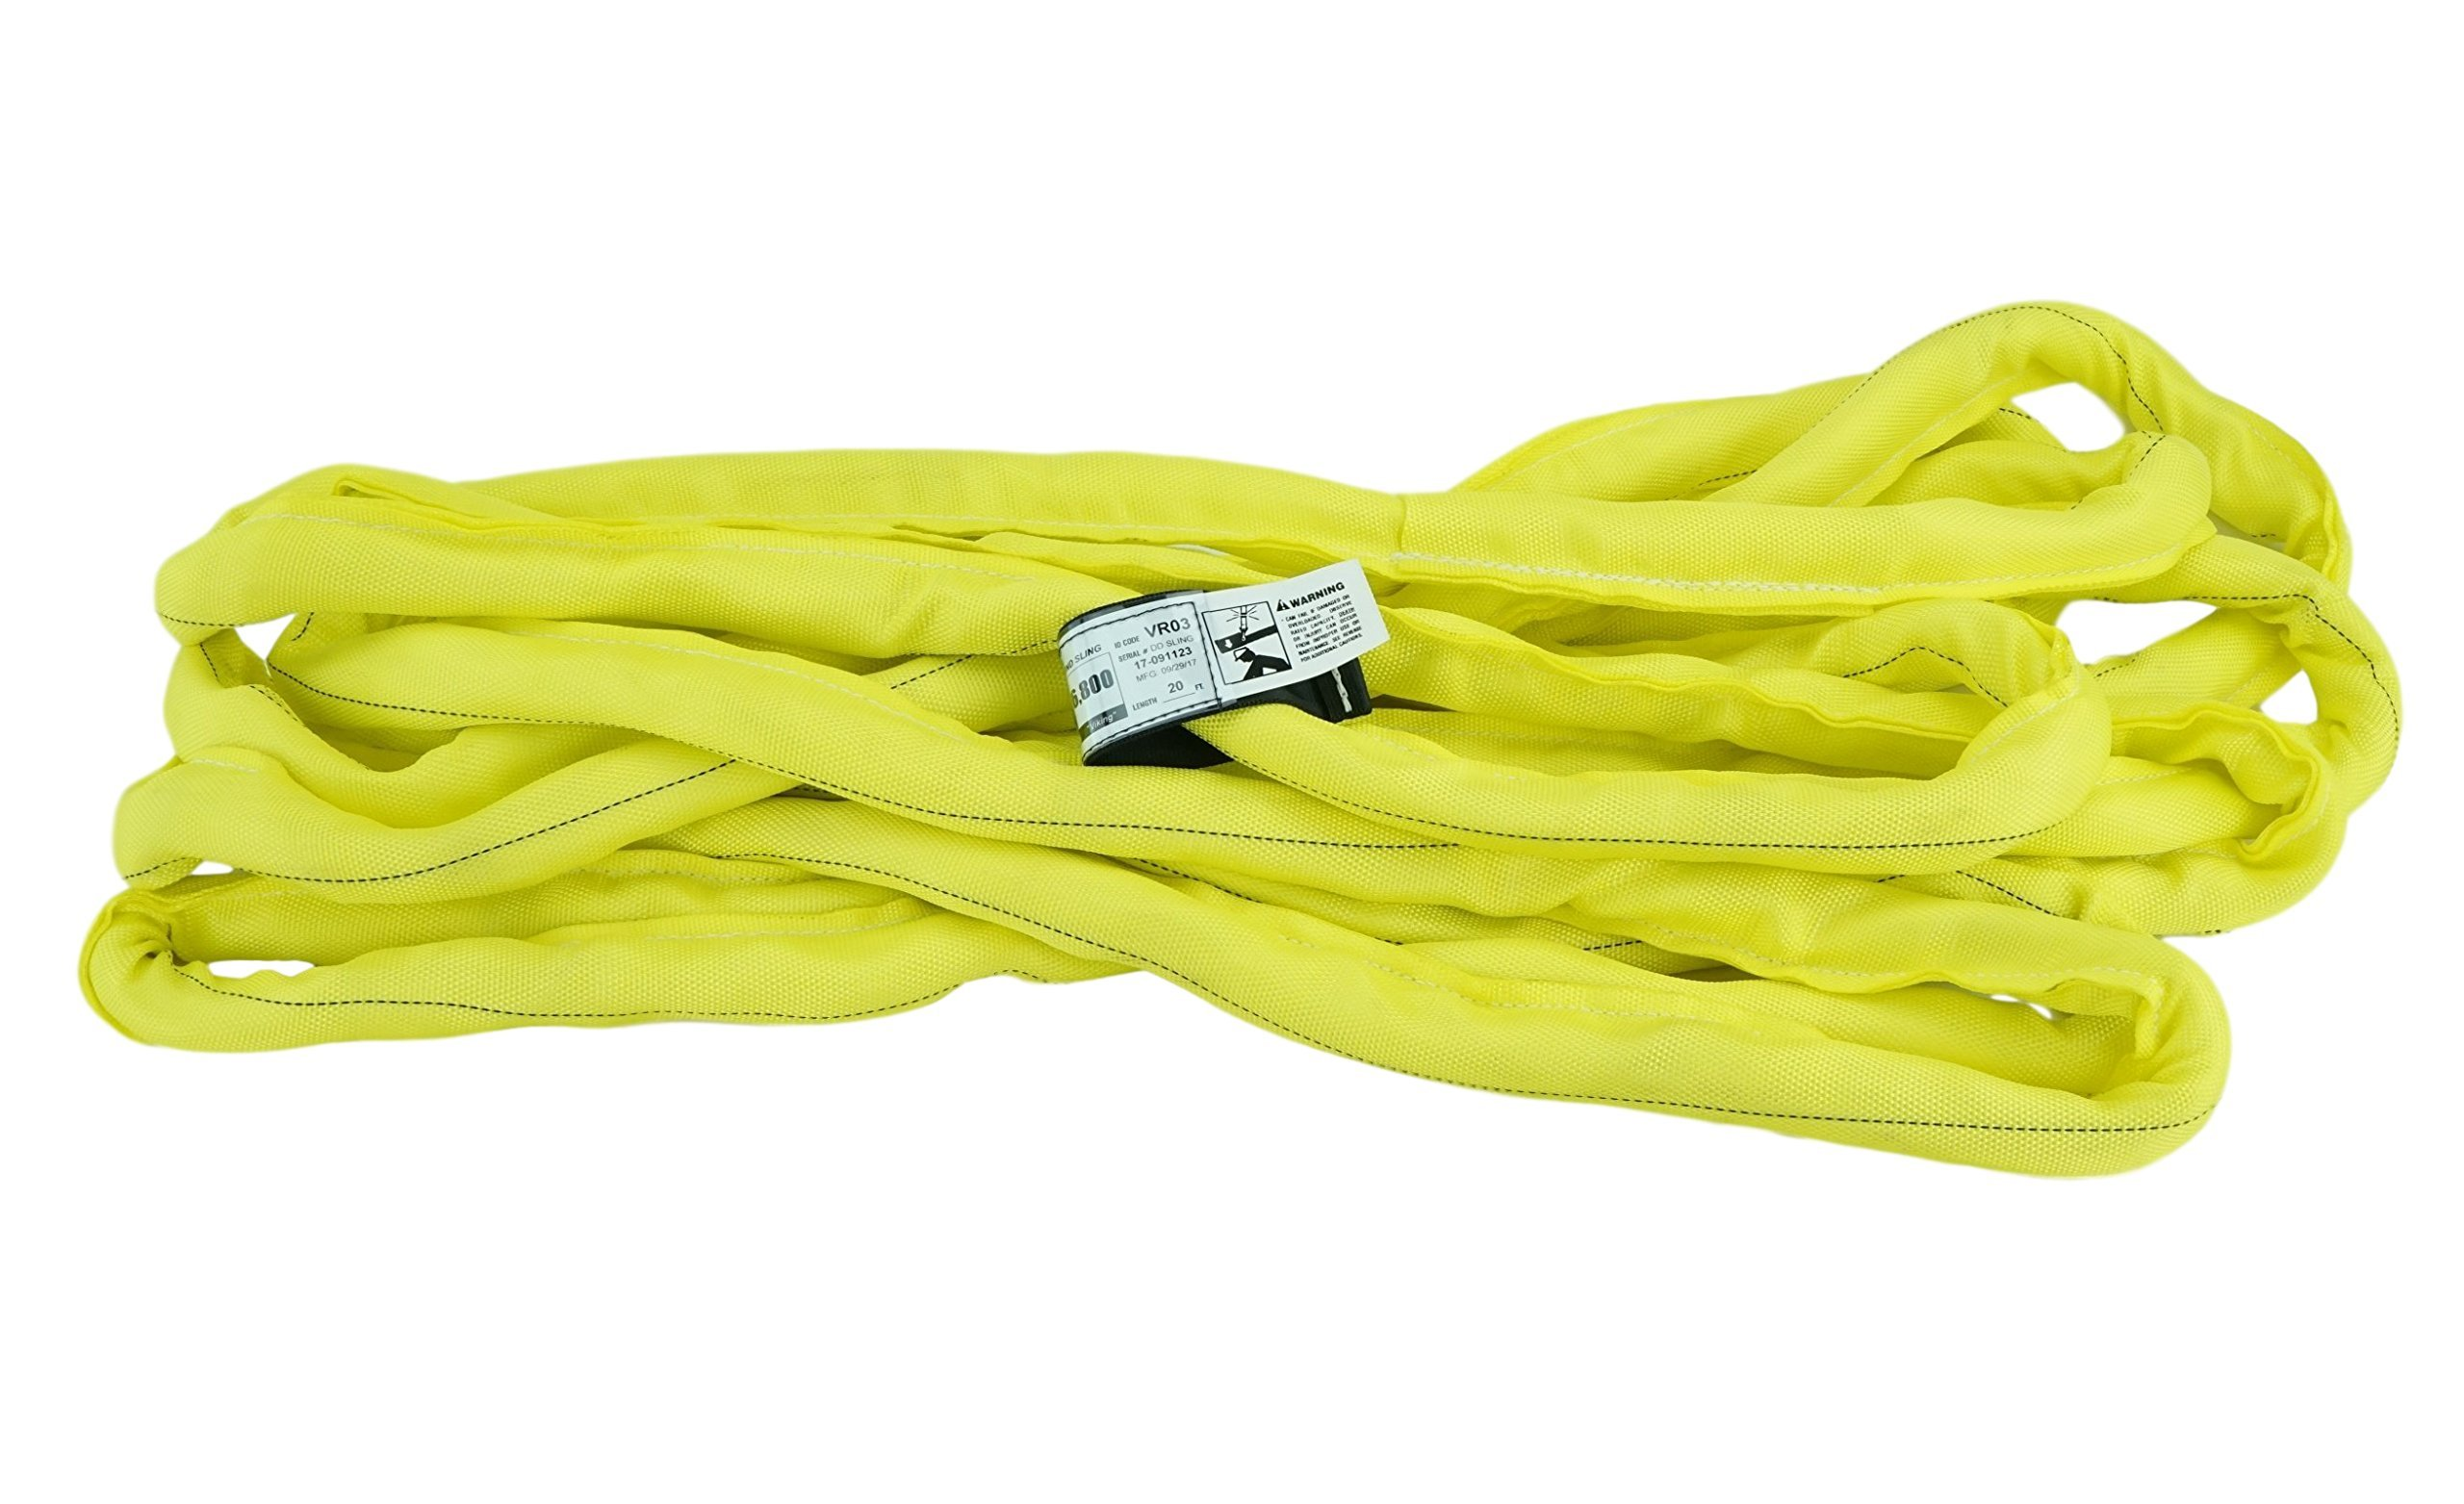 USA Made VR3 X 20' Yellow Slings 4'-20' Lengths In Listing, DOUBLE PLY COVER Endless Round Poly Lifting Slings, 8,400 lbs Vertical, 6,720 lbs Choker, 16,800 lbs Basket (USA Poly)(20 FT) by Chenango Supply